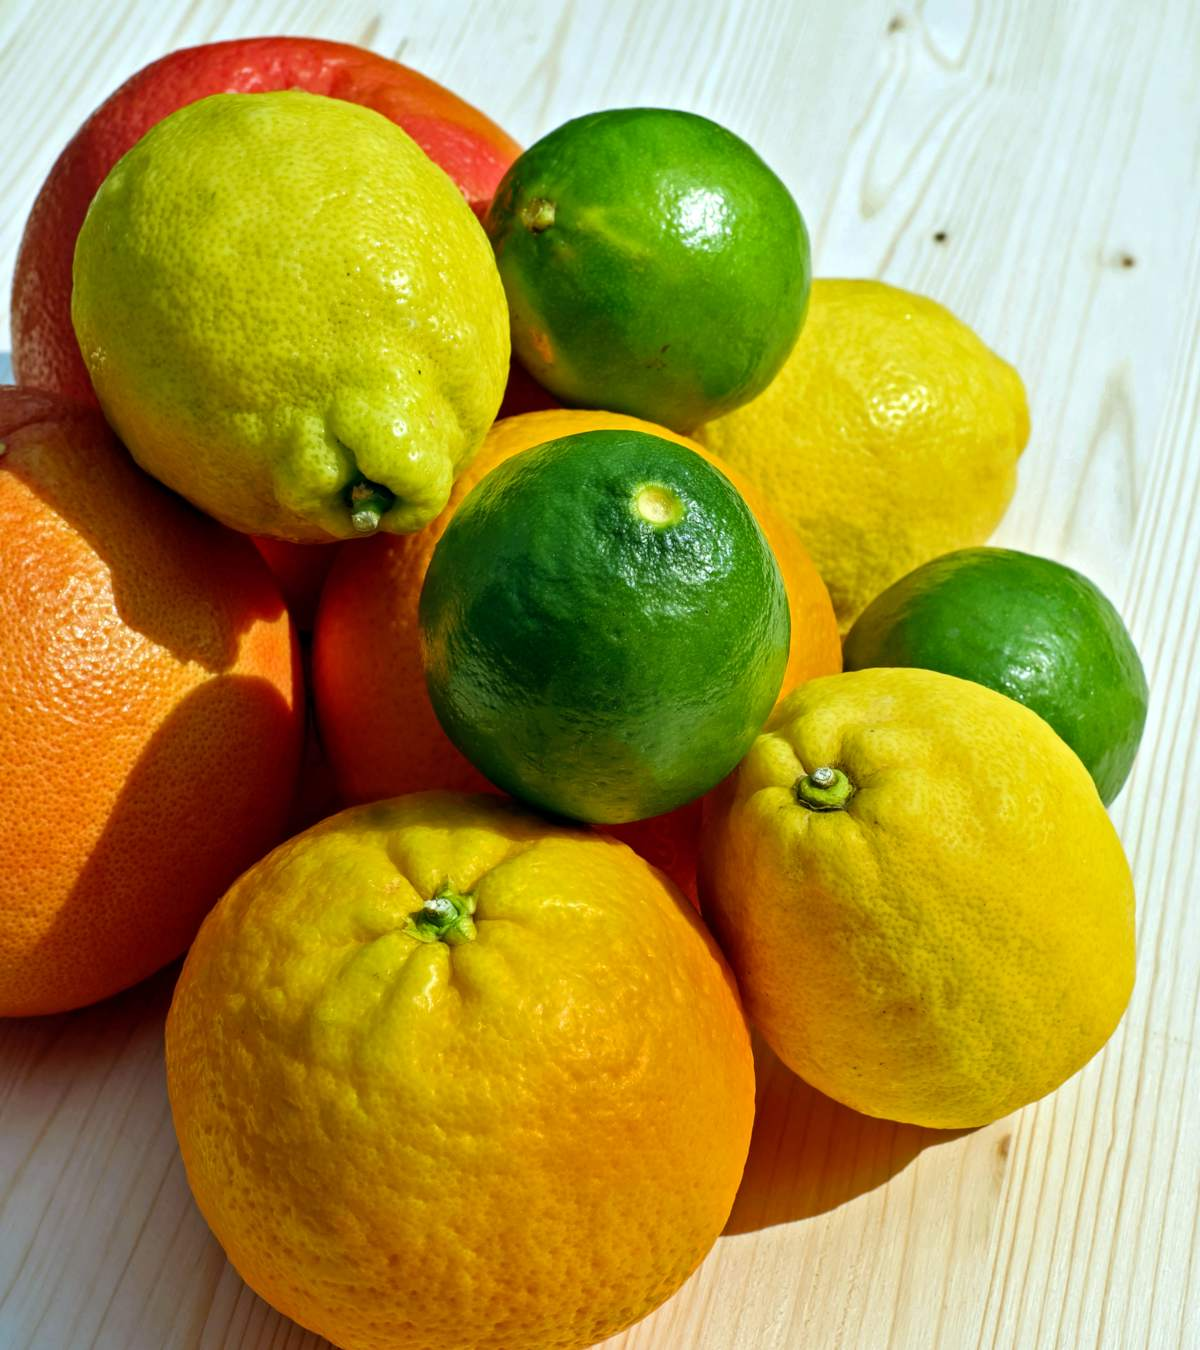 A stack of different citrus fruits